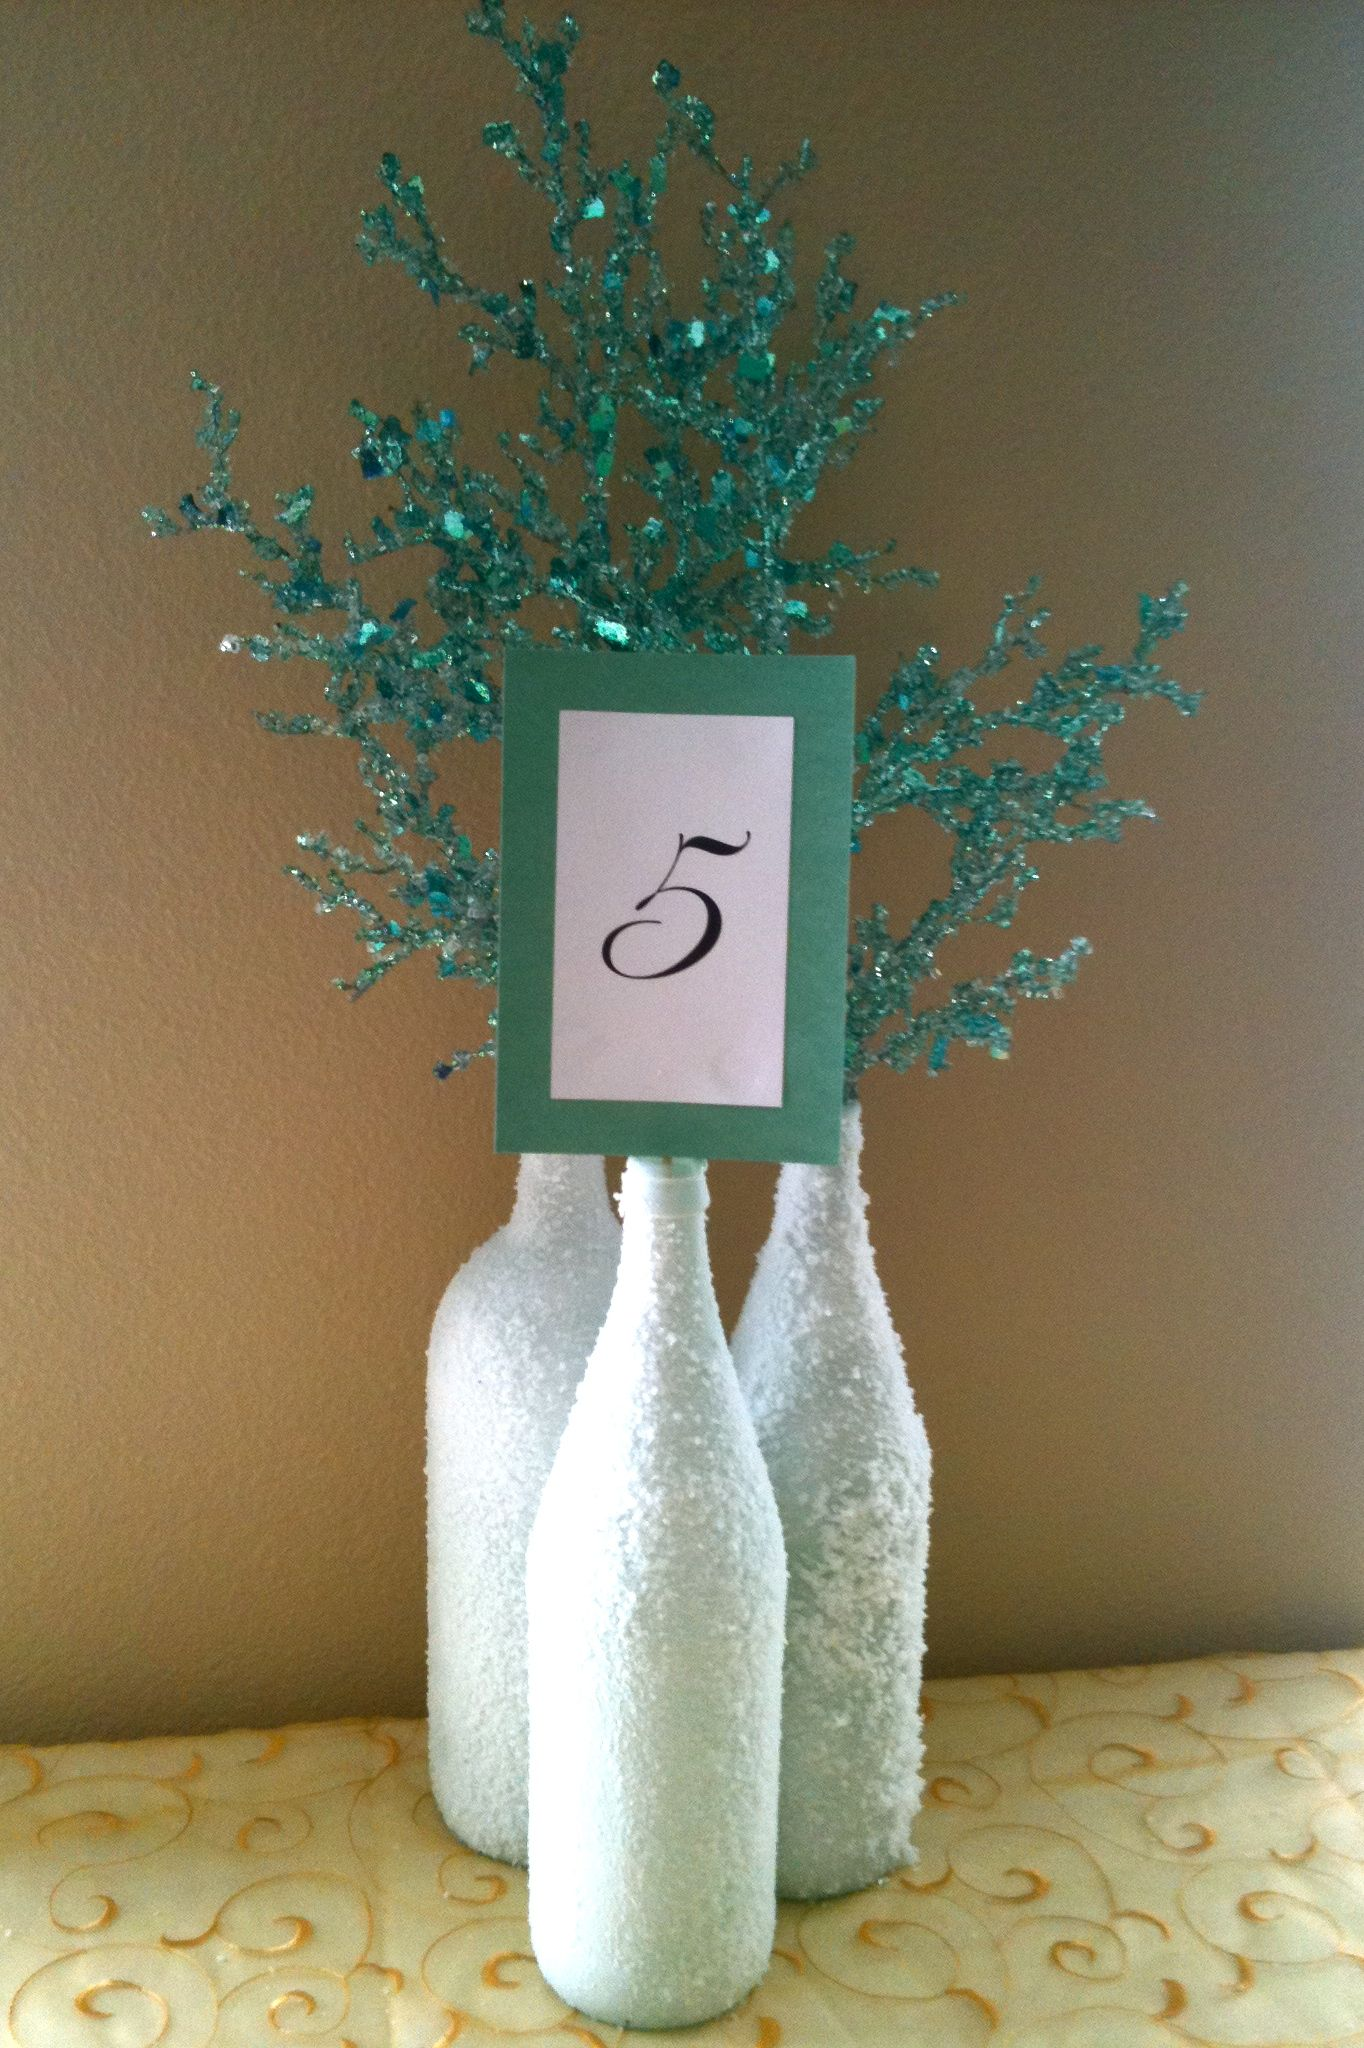 Diy winter inspired wedding centerpieces could you cover the